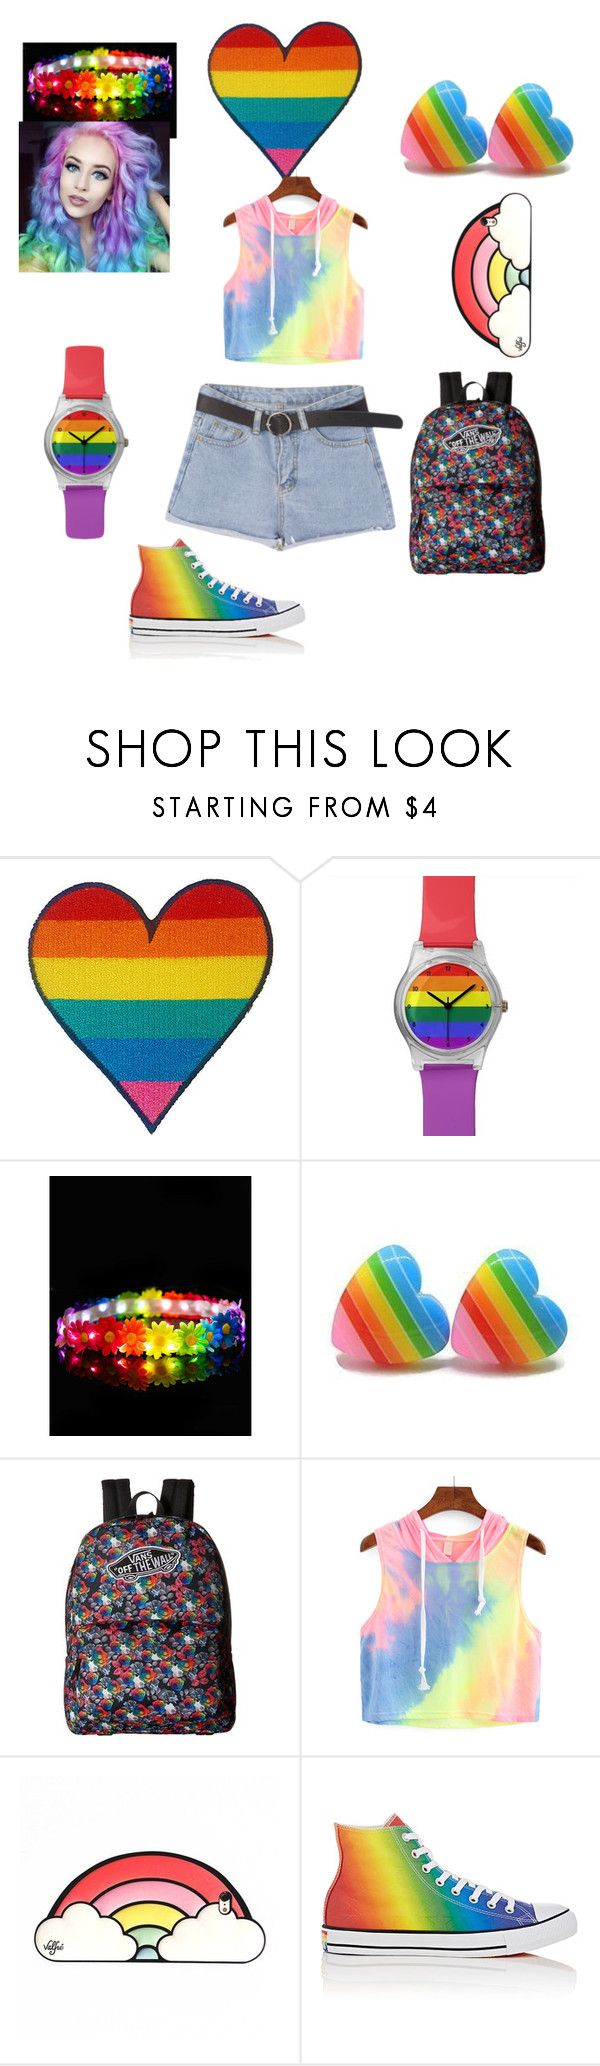 """#pride what pride means to me is letting others know that we are equal and that nothing should matter who we love as long as we are loved."" by music4life12 on Polyvore featuring May28th, Hippy Headbandz, Vans, Converse and pride"